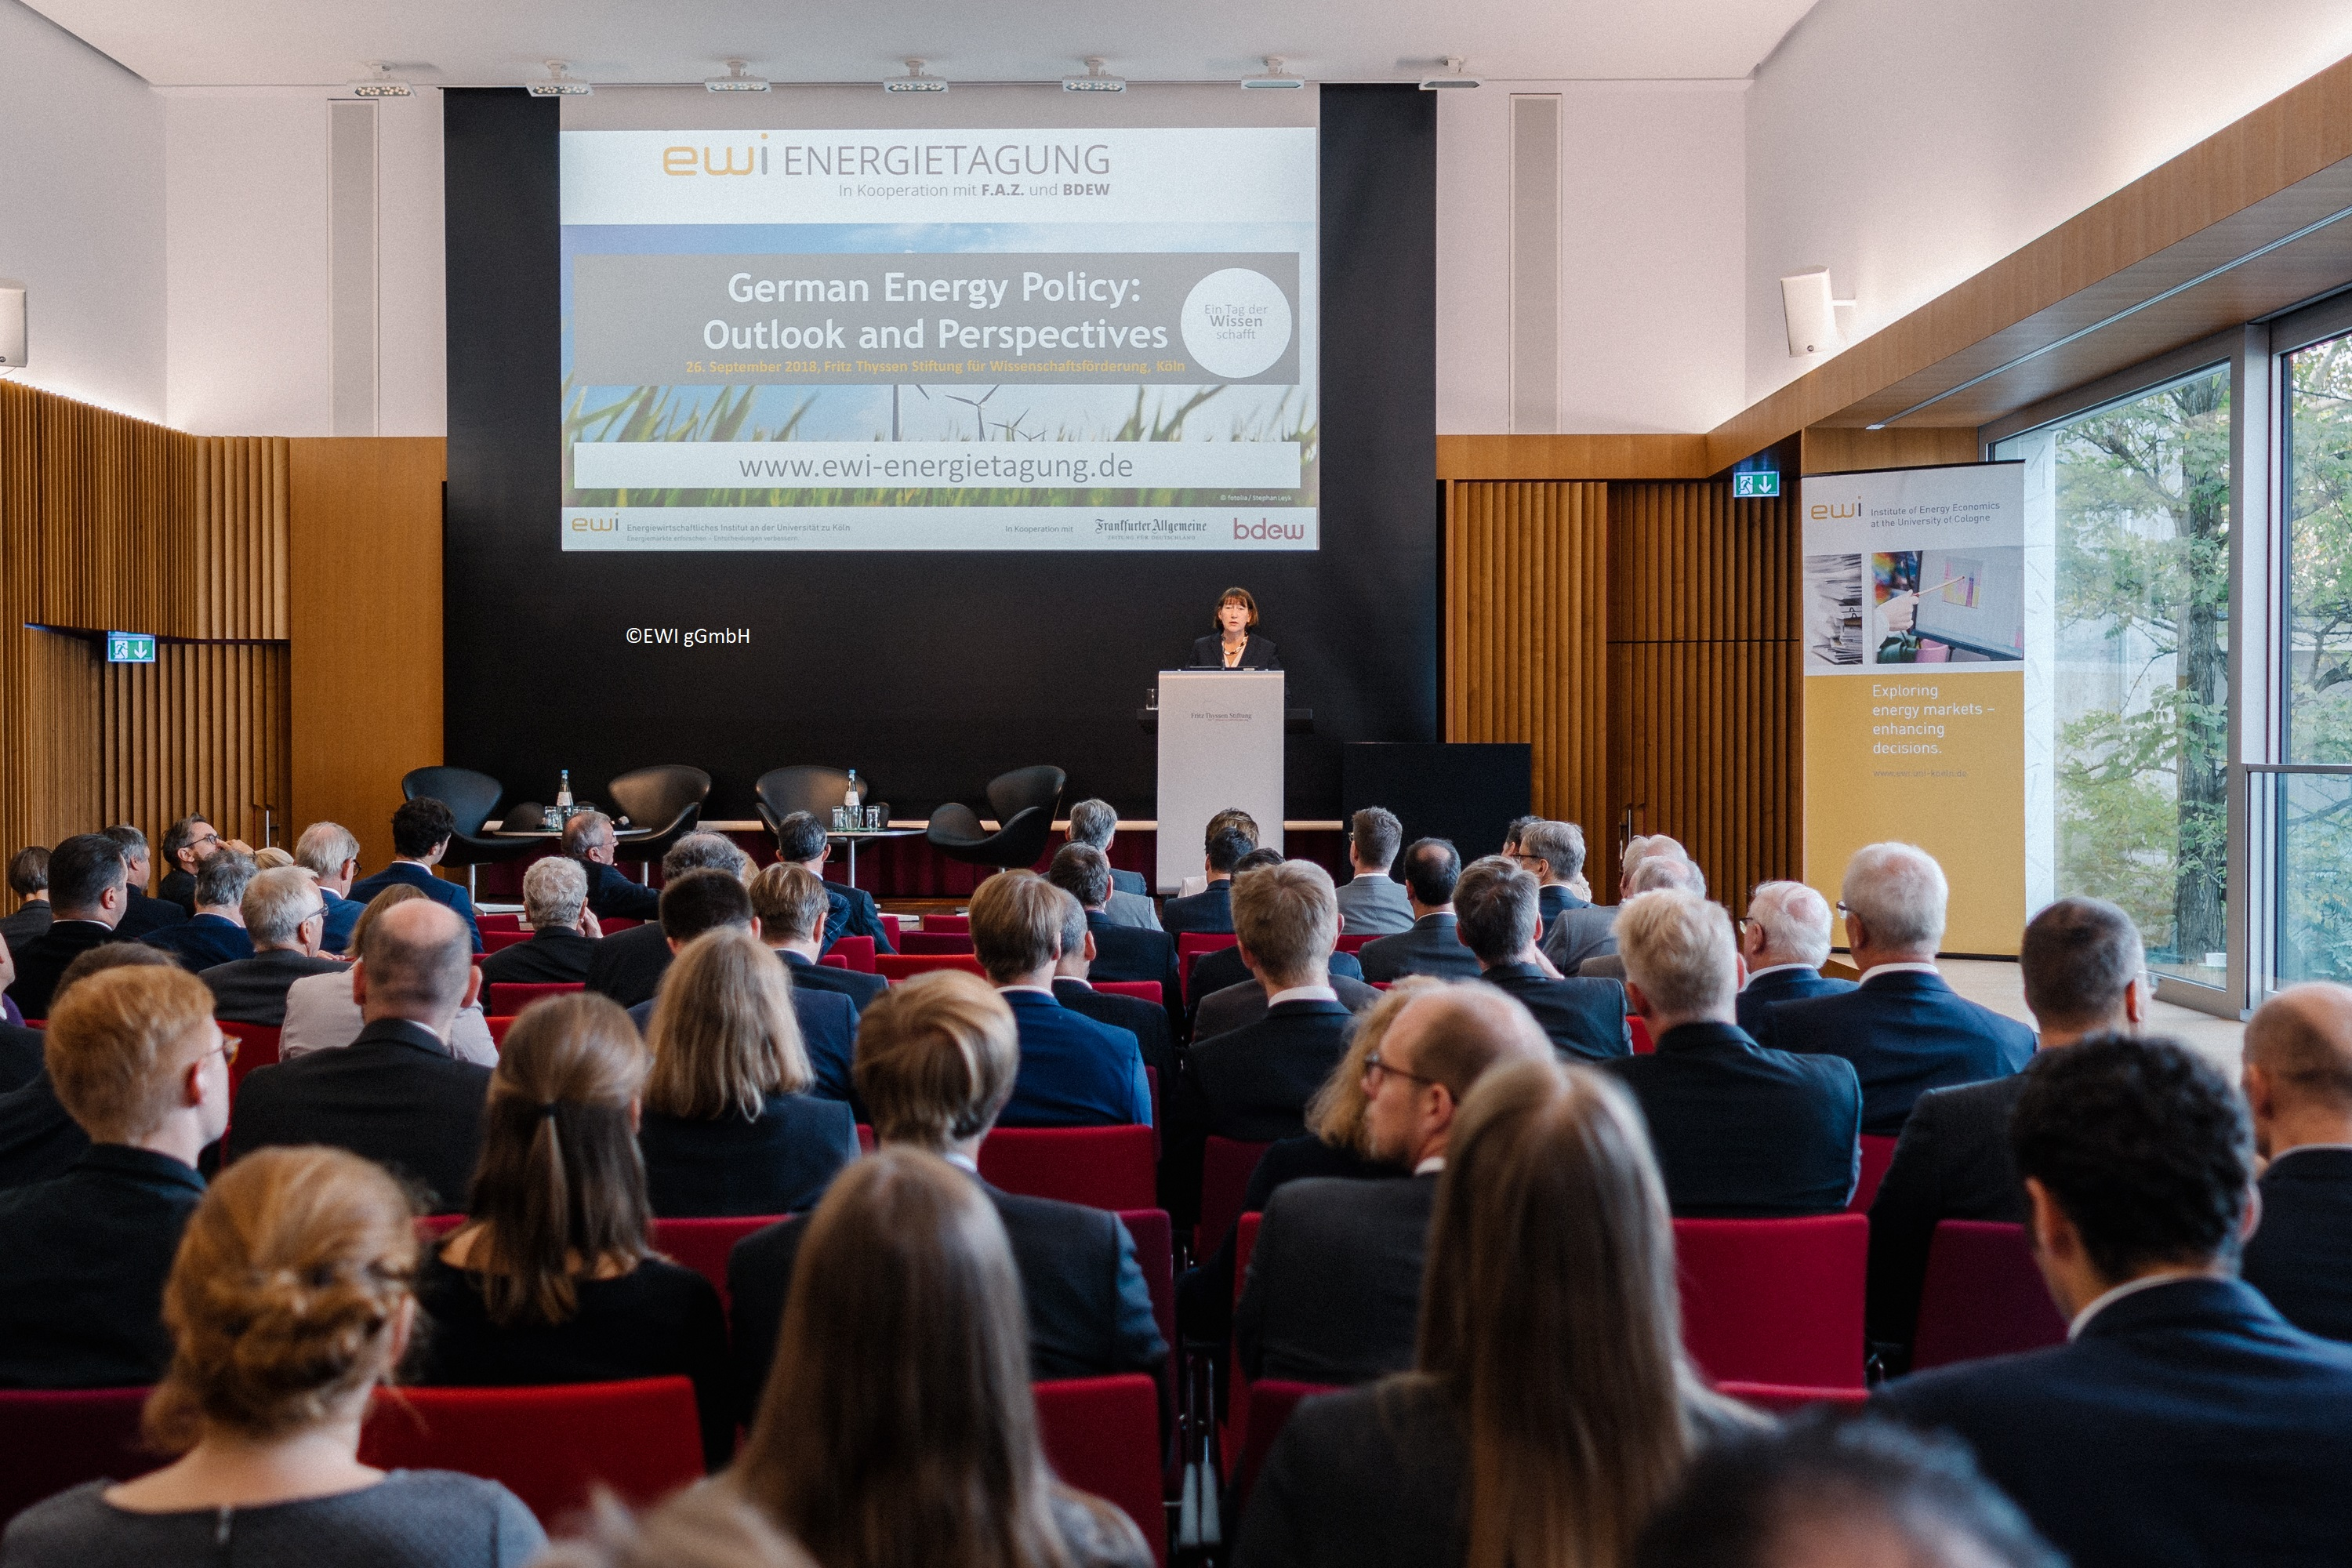 EWI Energy Conference 2019